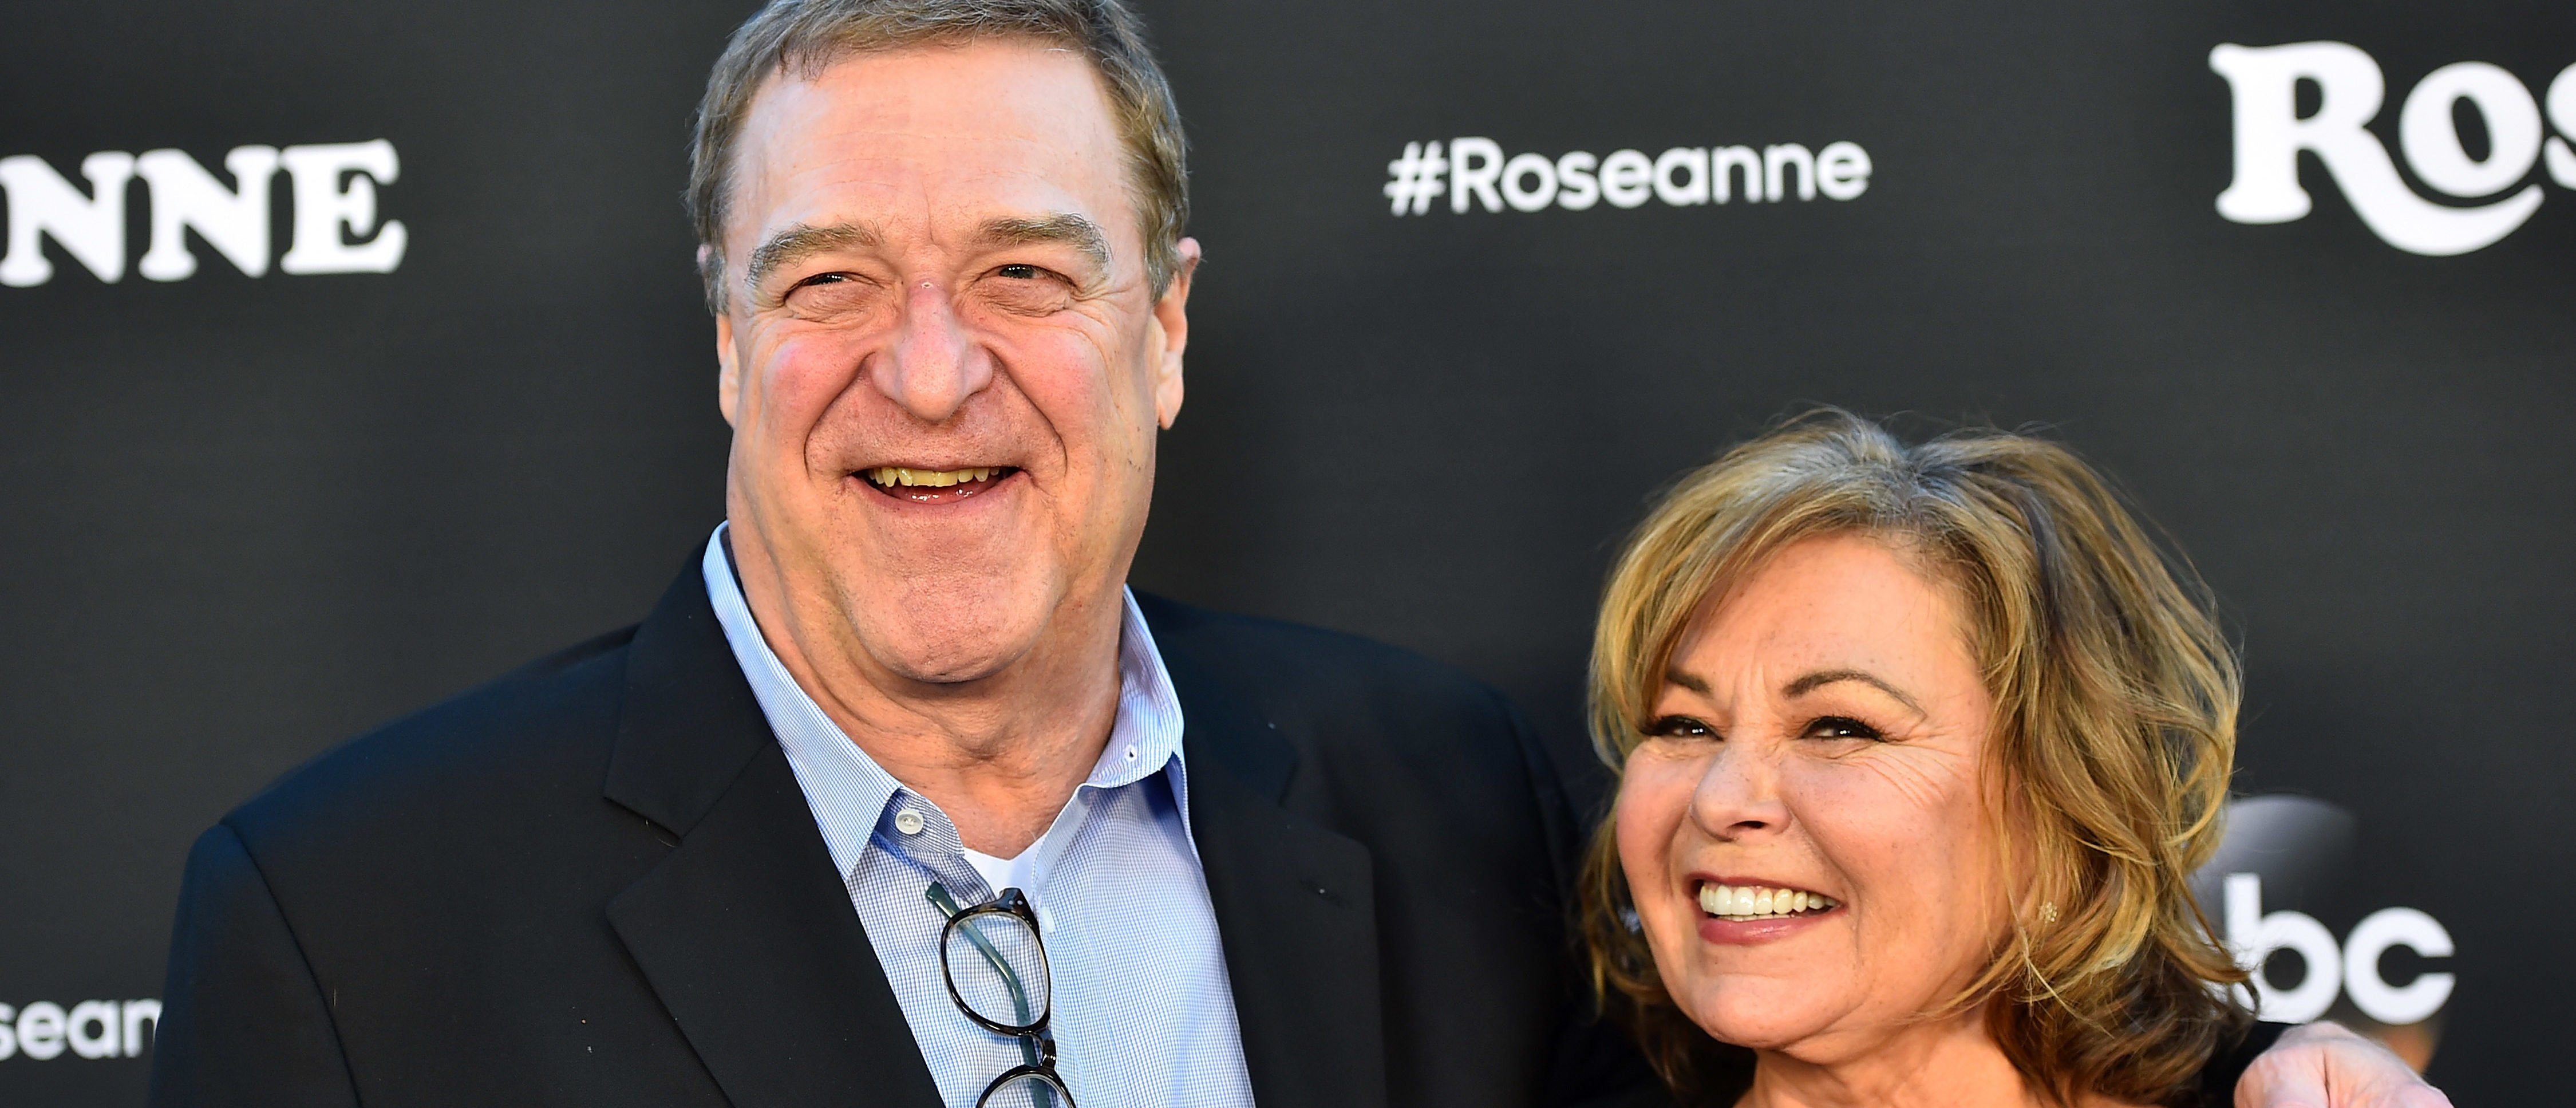 """BURBANK, CA - MARCH 23: John Goodman and Roseanne Barr attend the premiere of ABC's """"Roseanne"""" at Walt Disney Studio Lot on March 23, 2018 in Burbank, California. (Photo by Alberto E. Rodriguez/Getty Images)"""